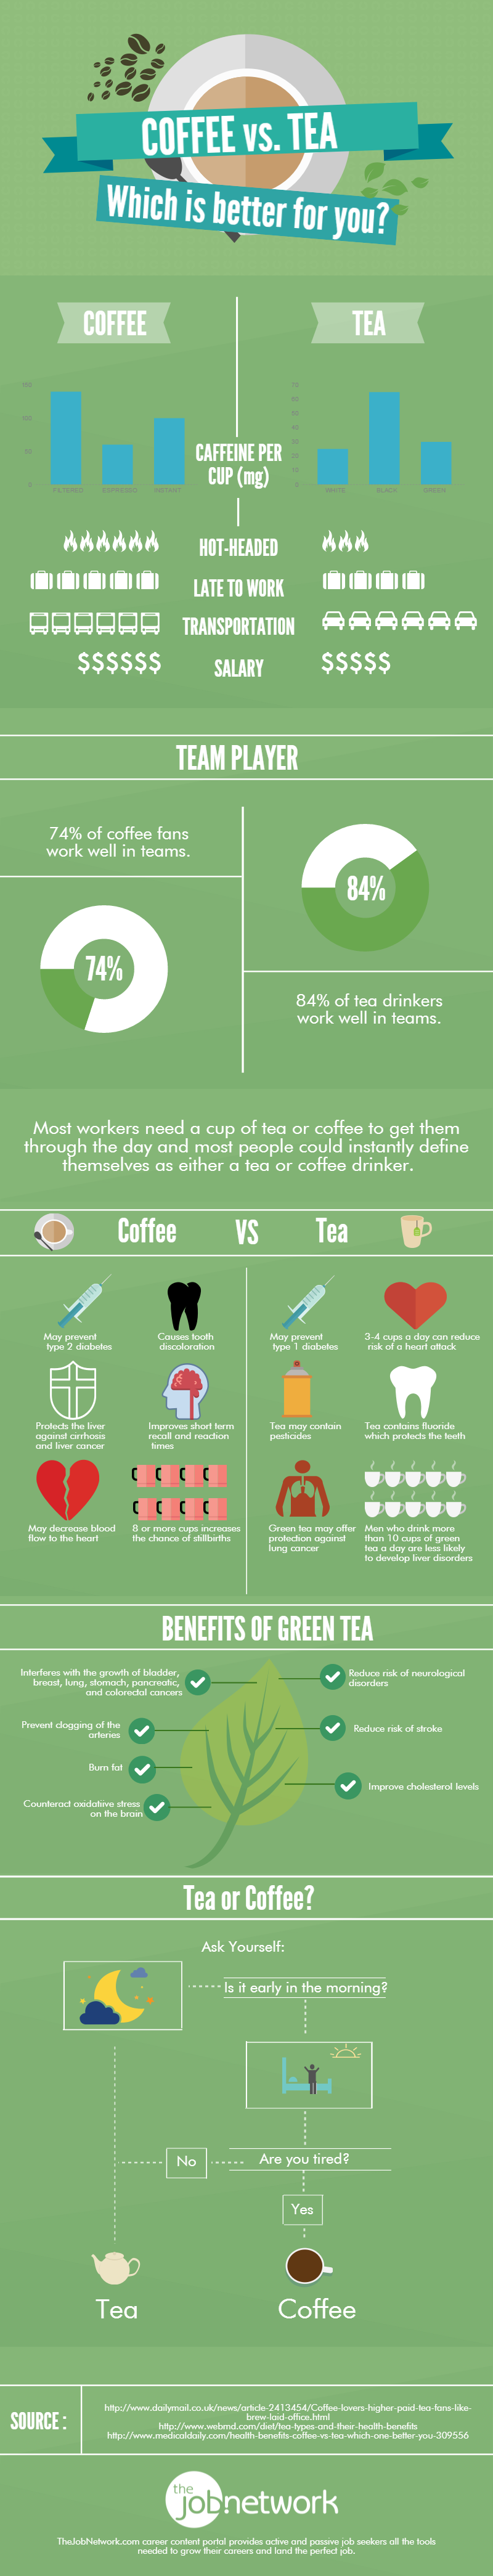 Coffee vs Tea: Which is Better for You? [Infographic] - An Infographic from TheJobNetwork